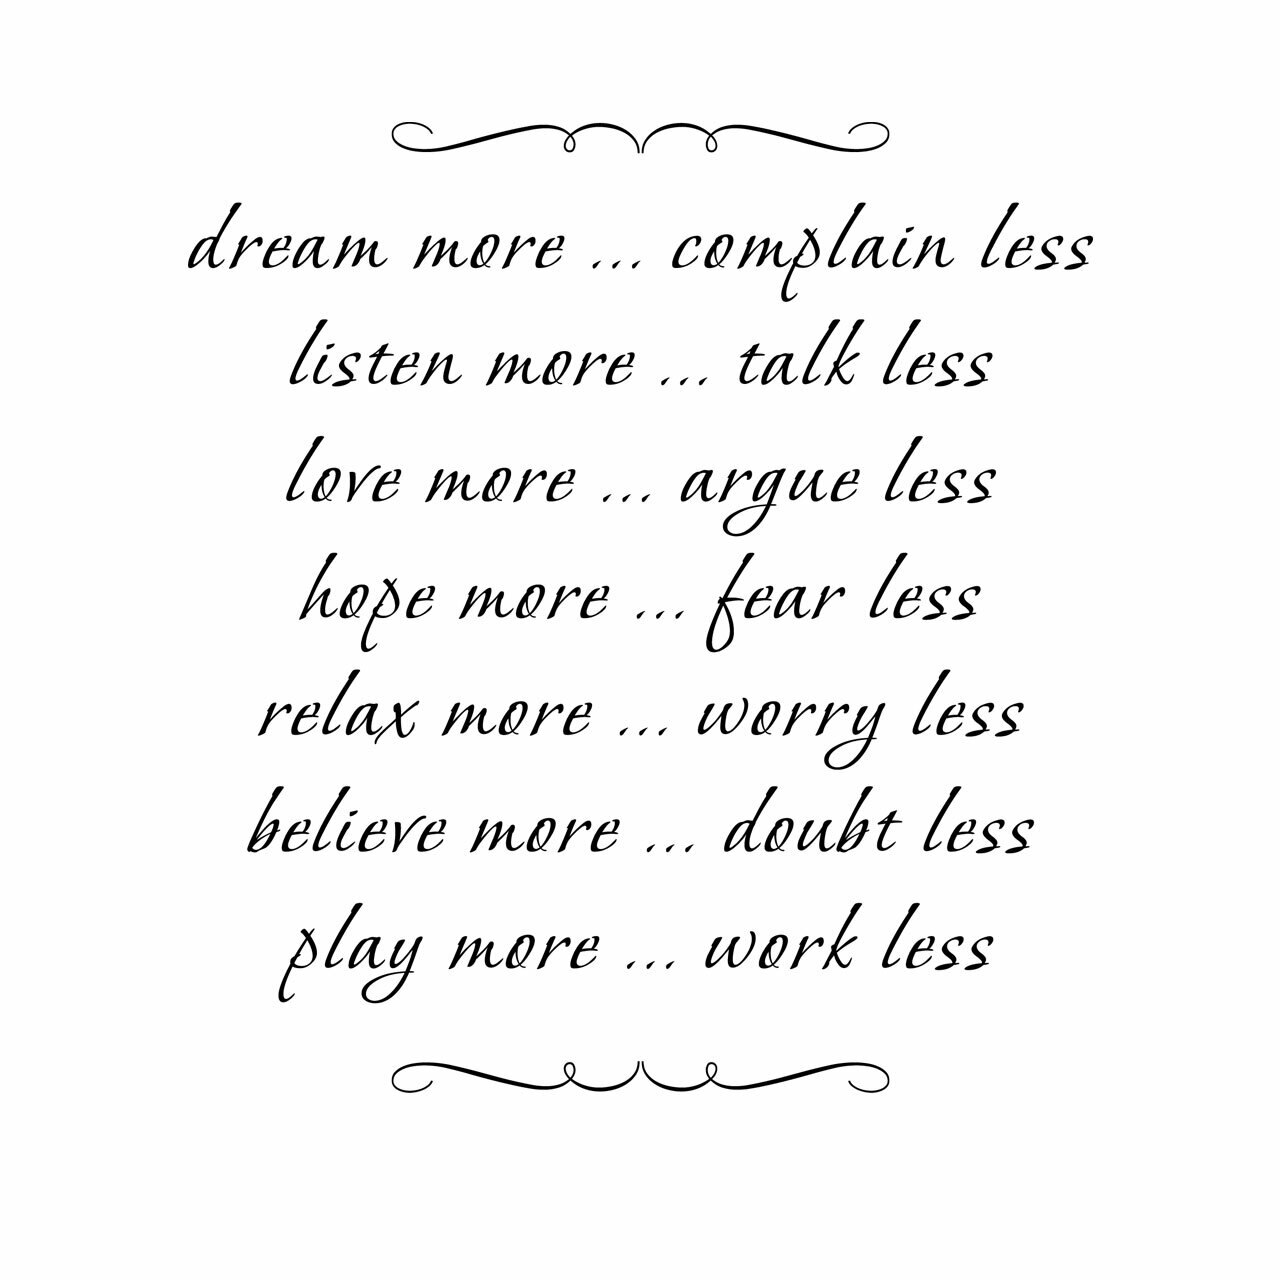 dream more complain less ... listen more talk less ... love more argue less ... hope more fear less ... relax more worry less ... believe more doubt less ... play more work less written in multiple lines in black with decorative scrolls on the top and bottom on a white background